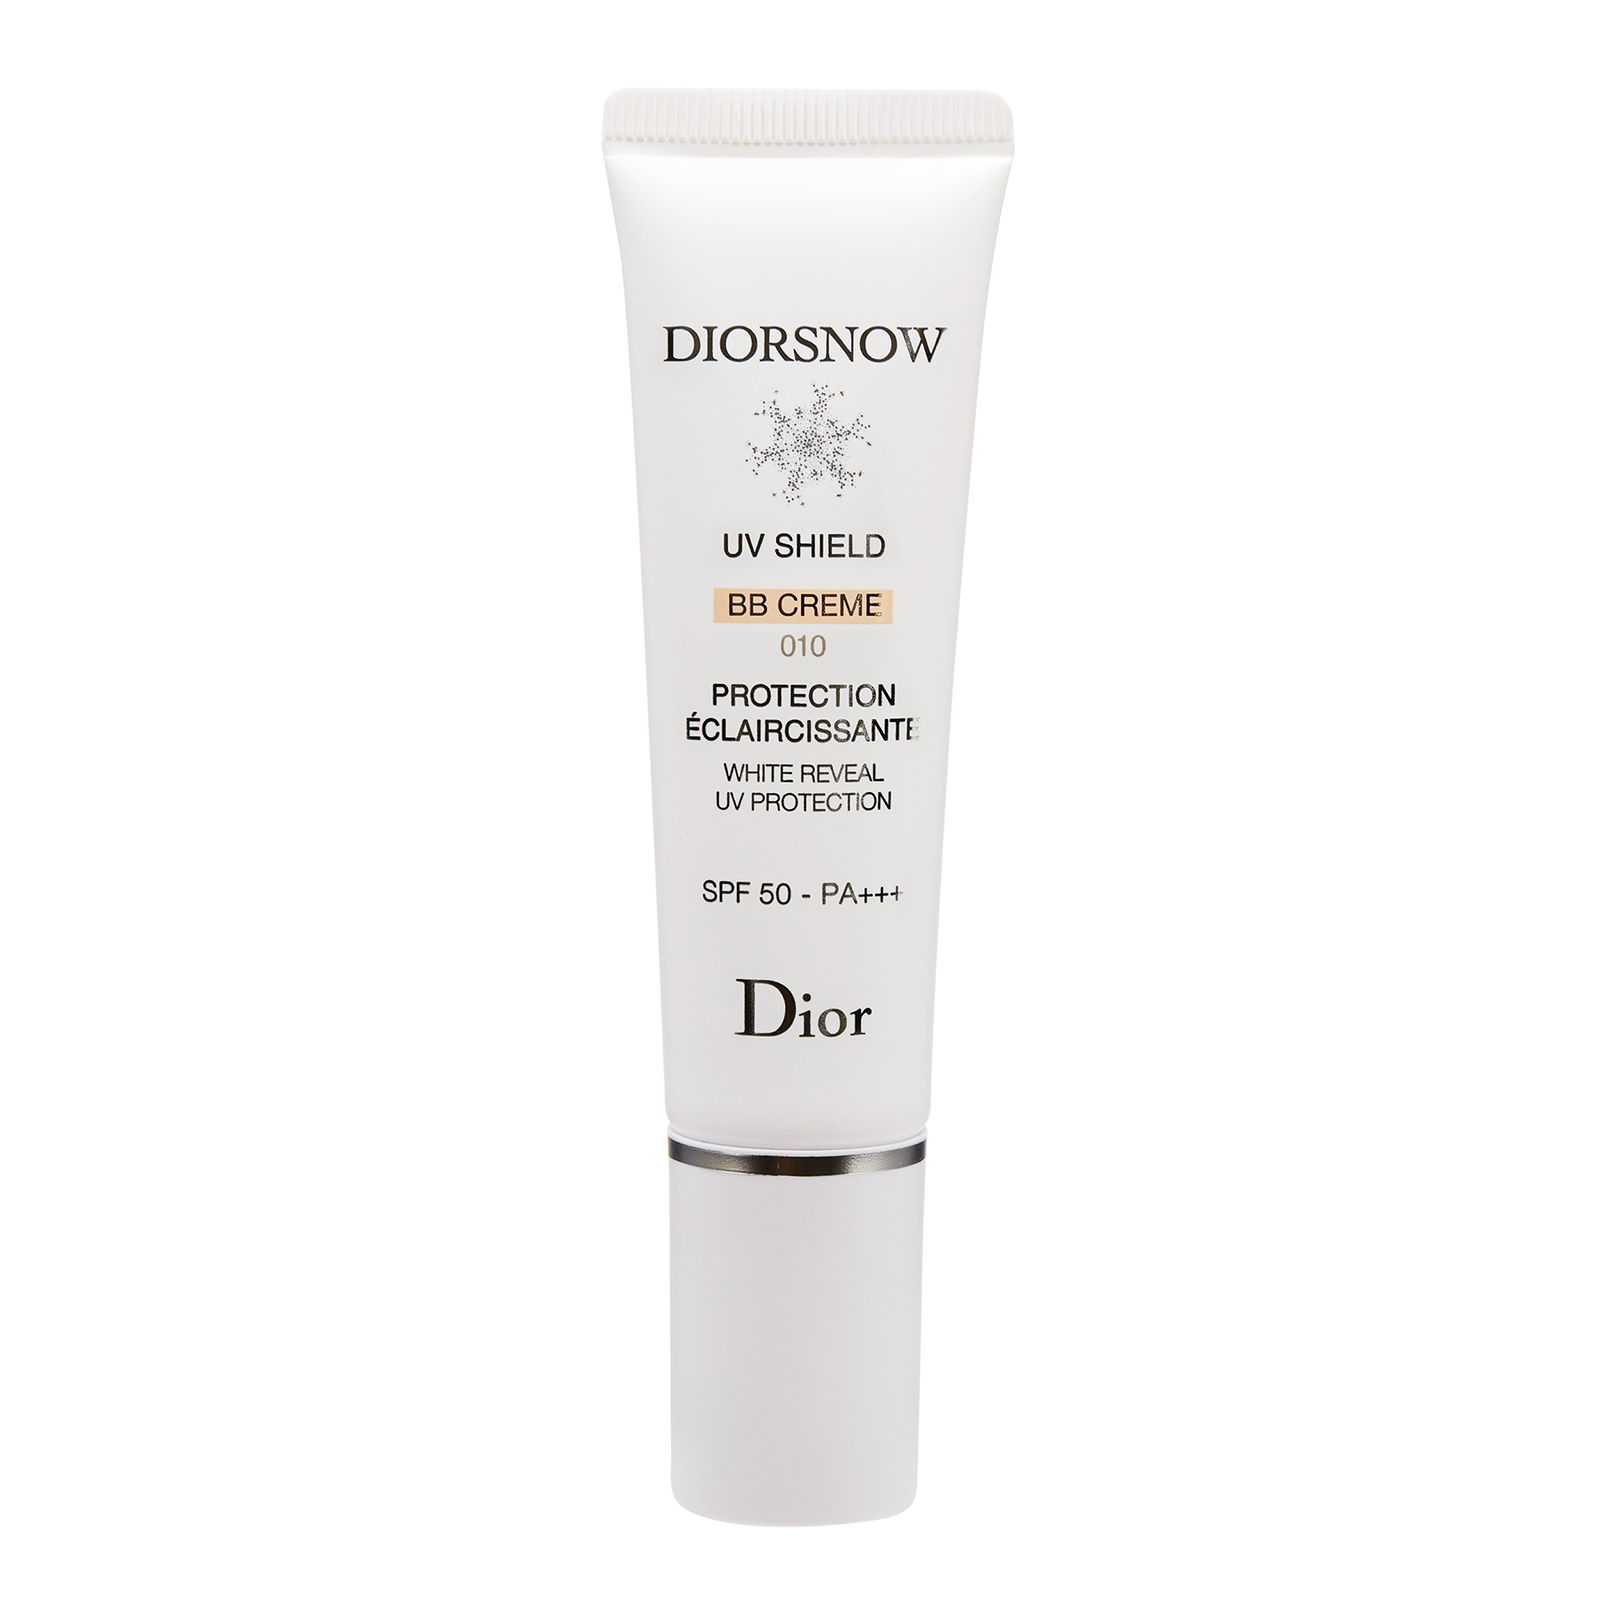 Christian Dior DiorSnow UV Shield BB Creme White reveal UV protection SPF 50 - PA+++ #010, 1.2oz, 30ml